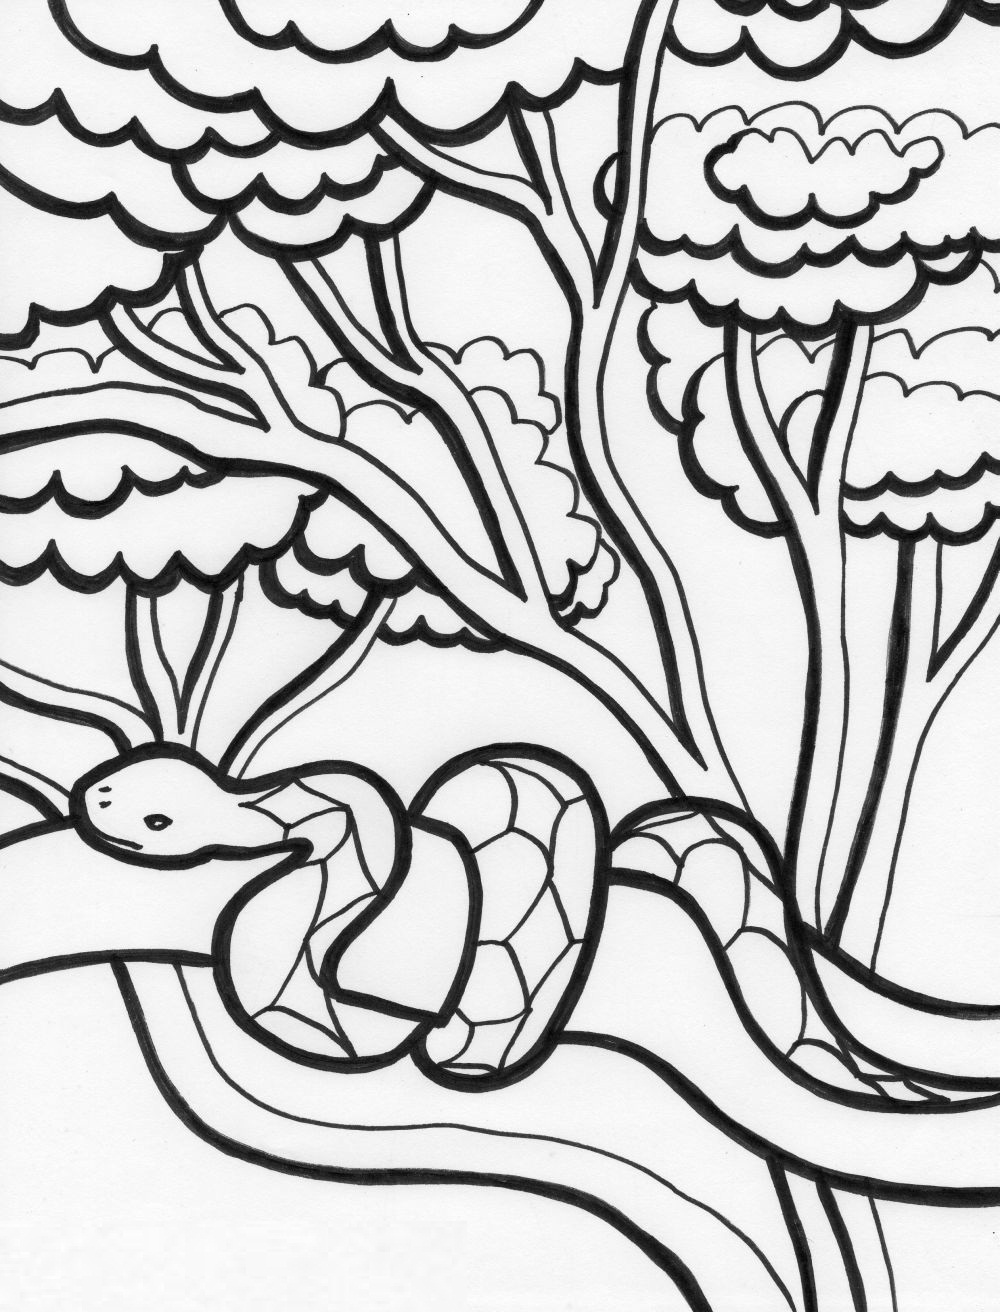 snakes to color king cobra snake coloring pages download and print for free to snakes color